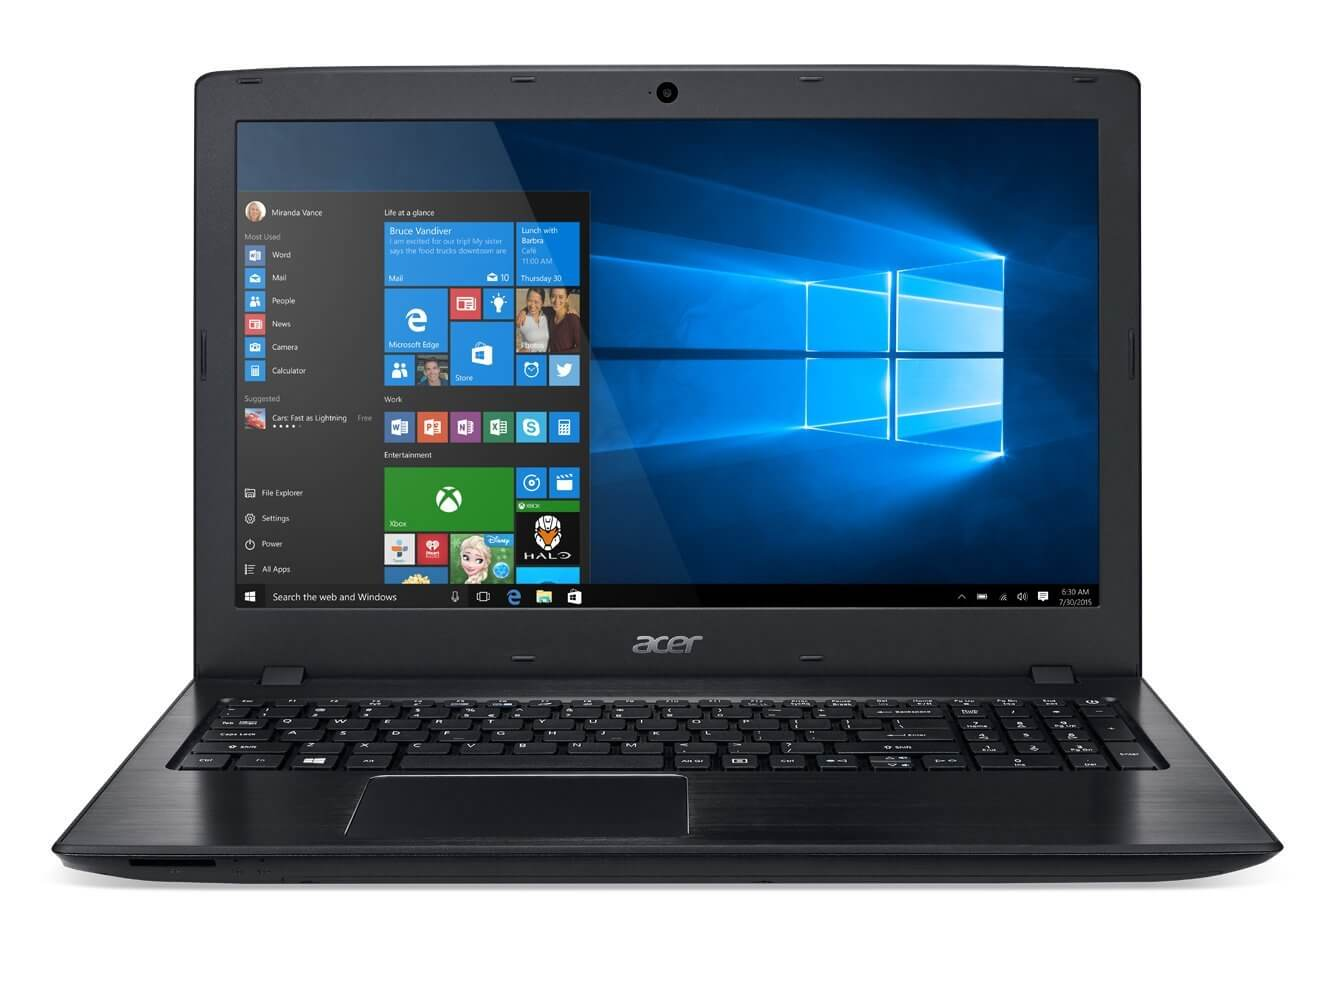 Acer Aspire E 15 E5-575G-57D4 15.6-Inches Full HD Notebook best business laptop with dedicated graphics card good for gaming also